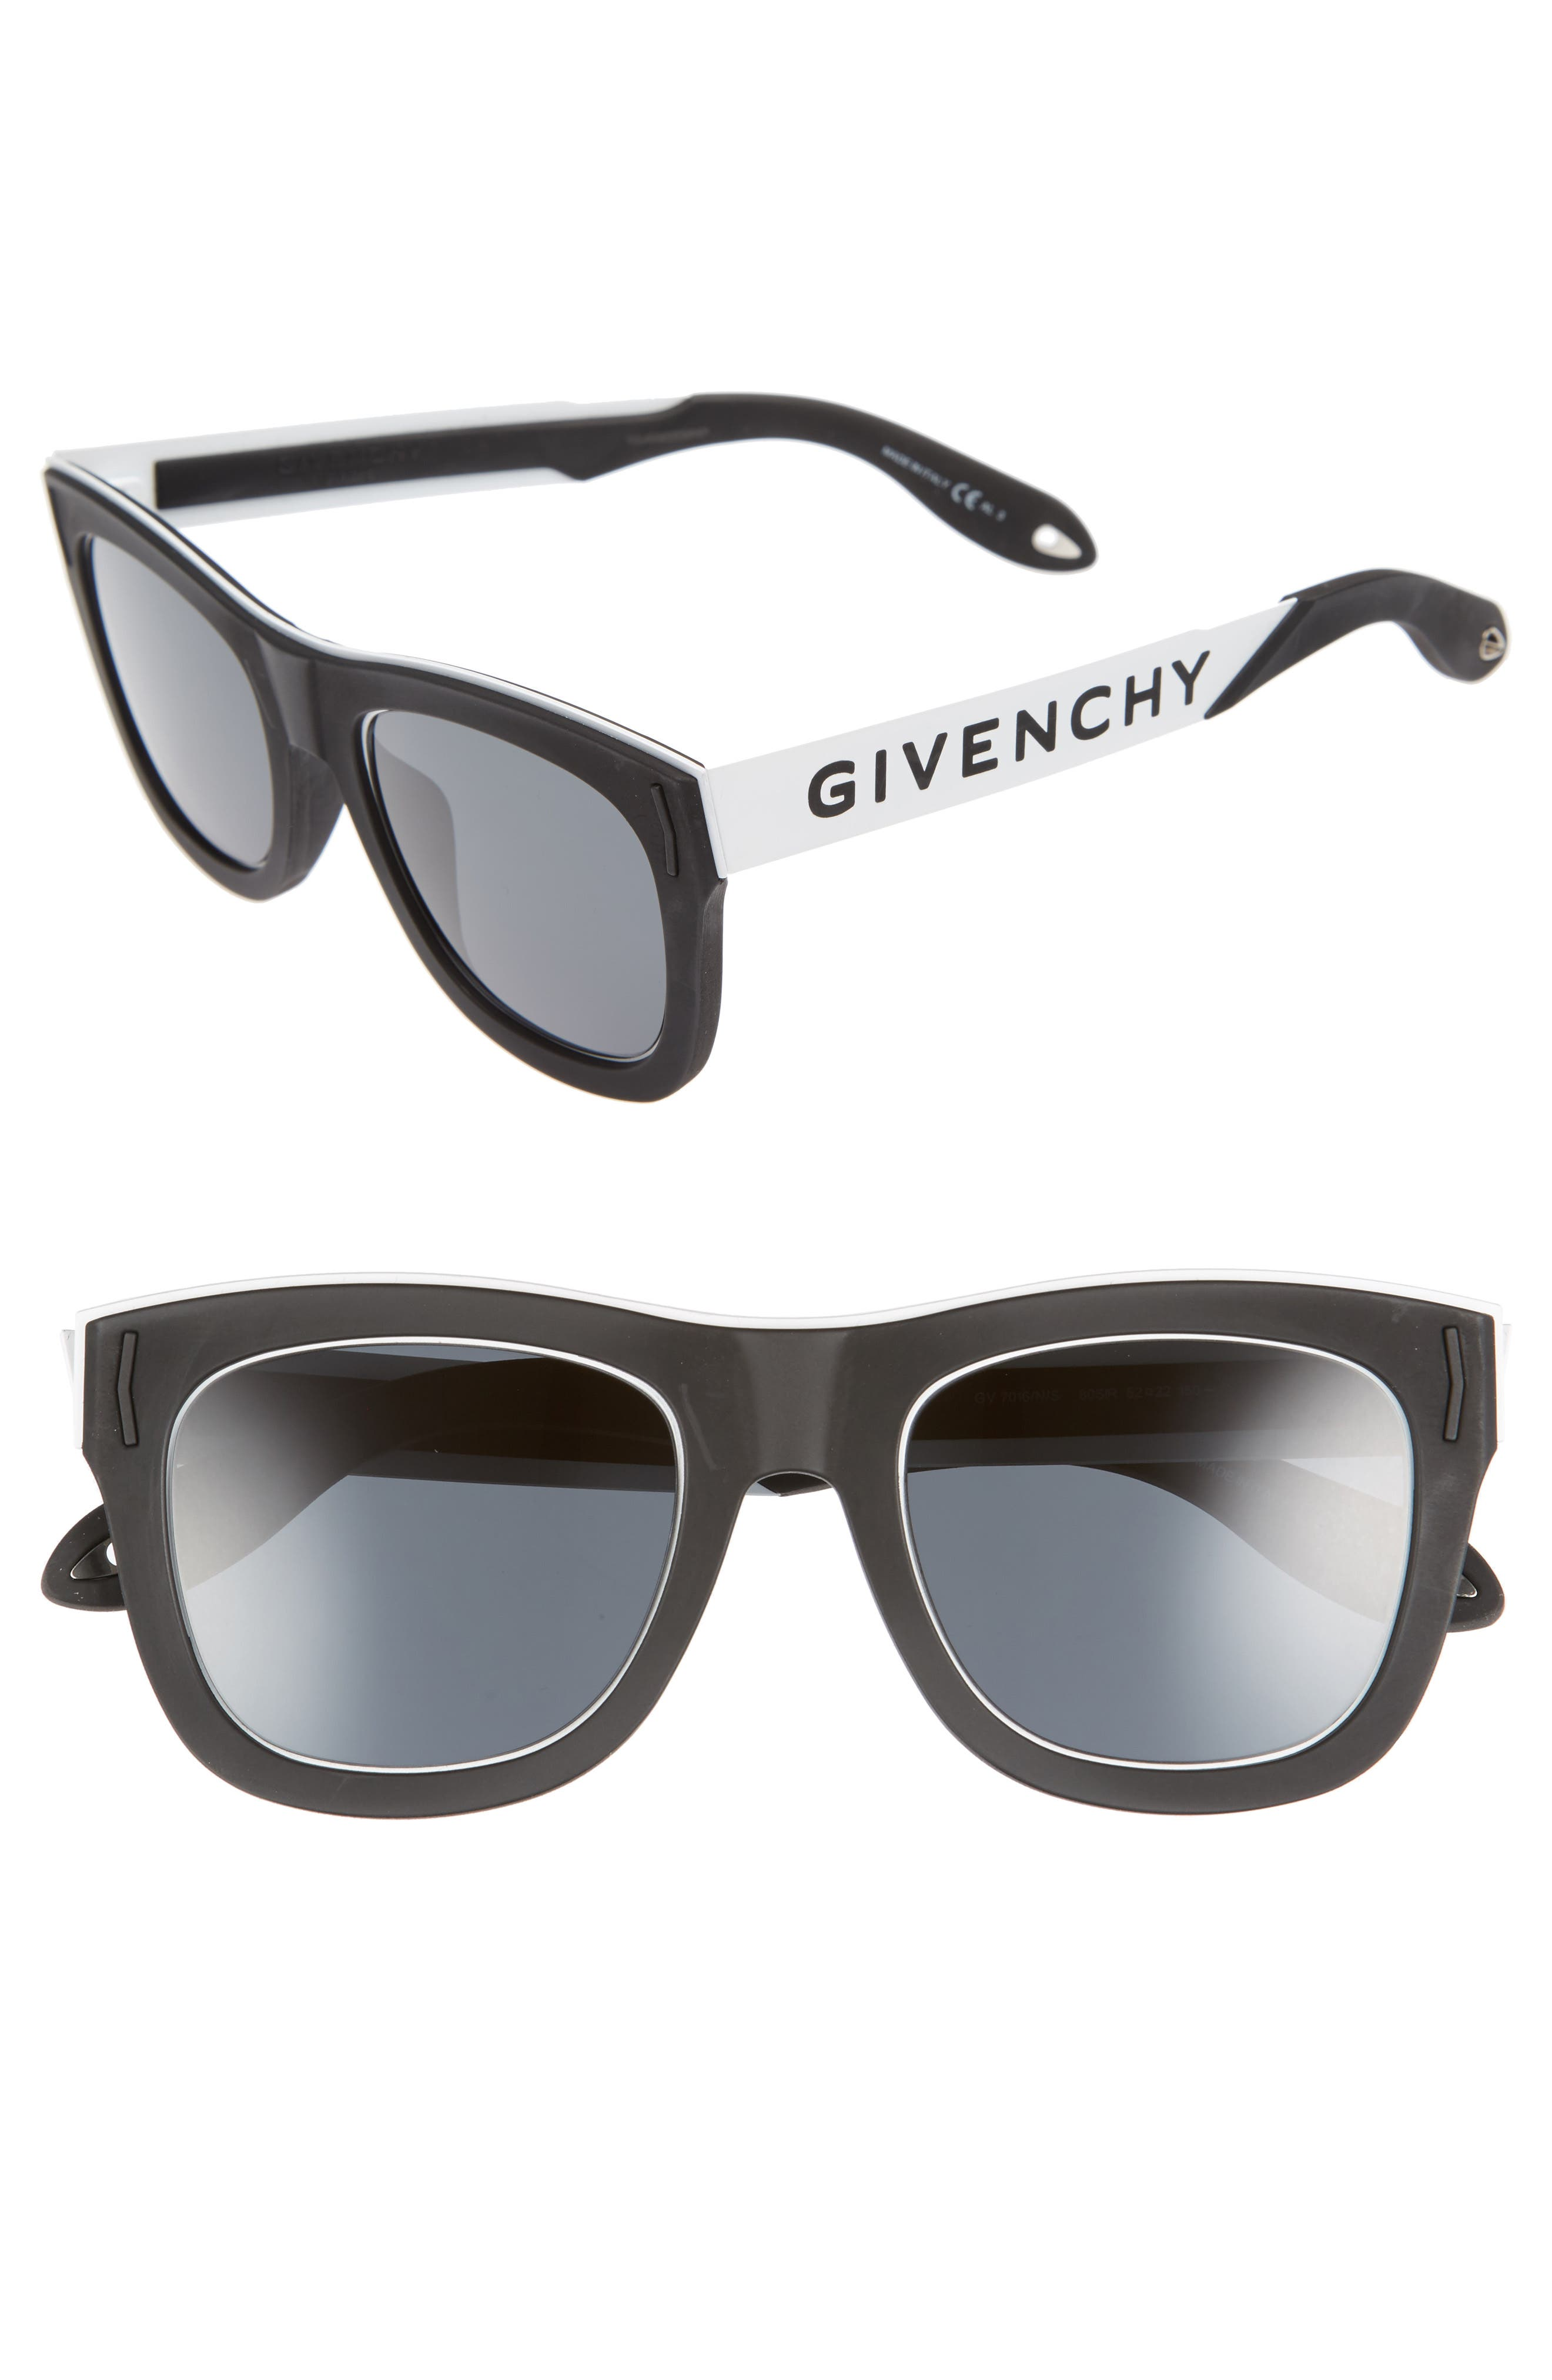 GIVENCHY 52Mm Gradient Lens Sunglasses